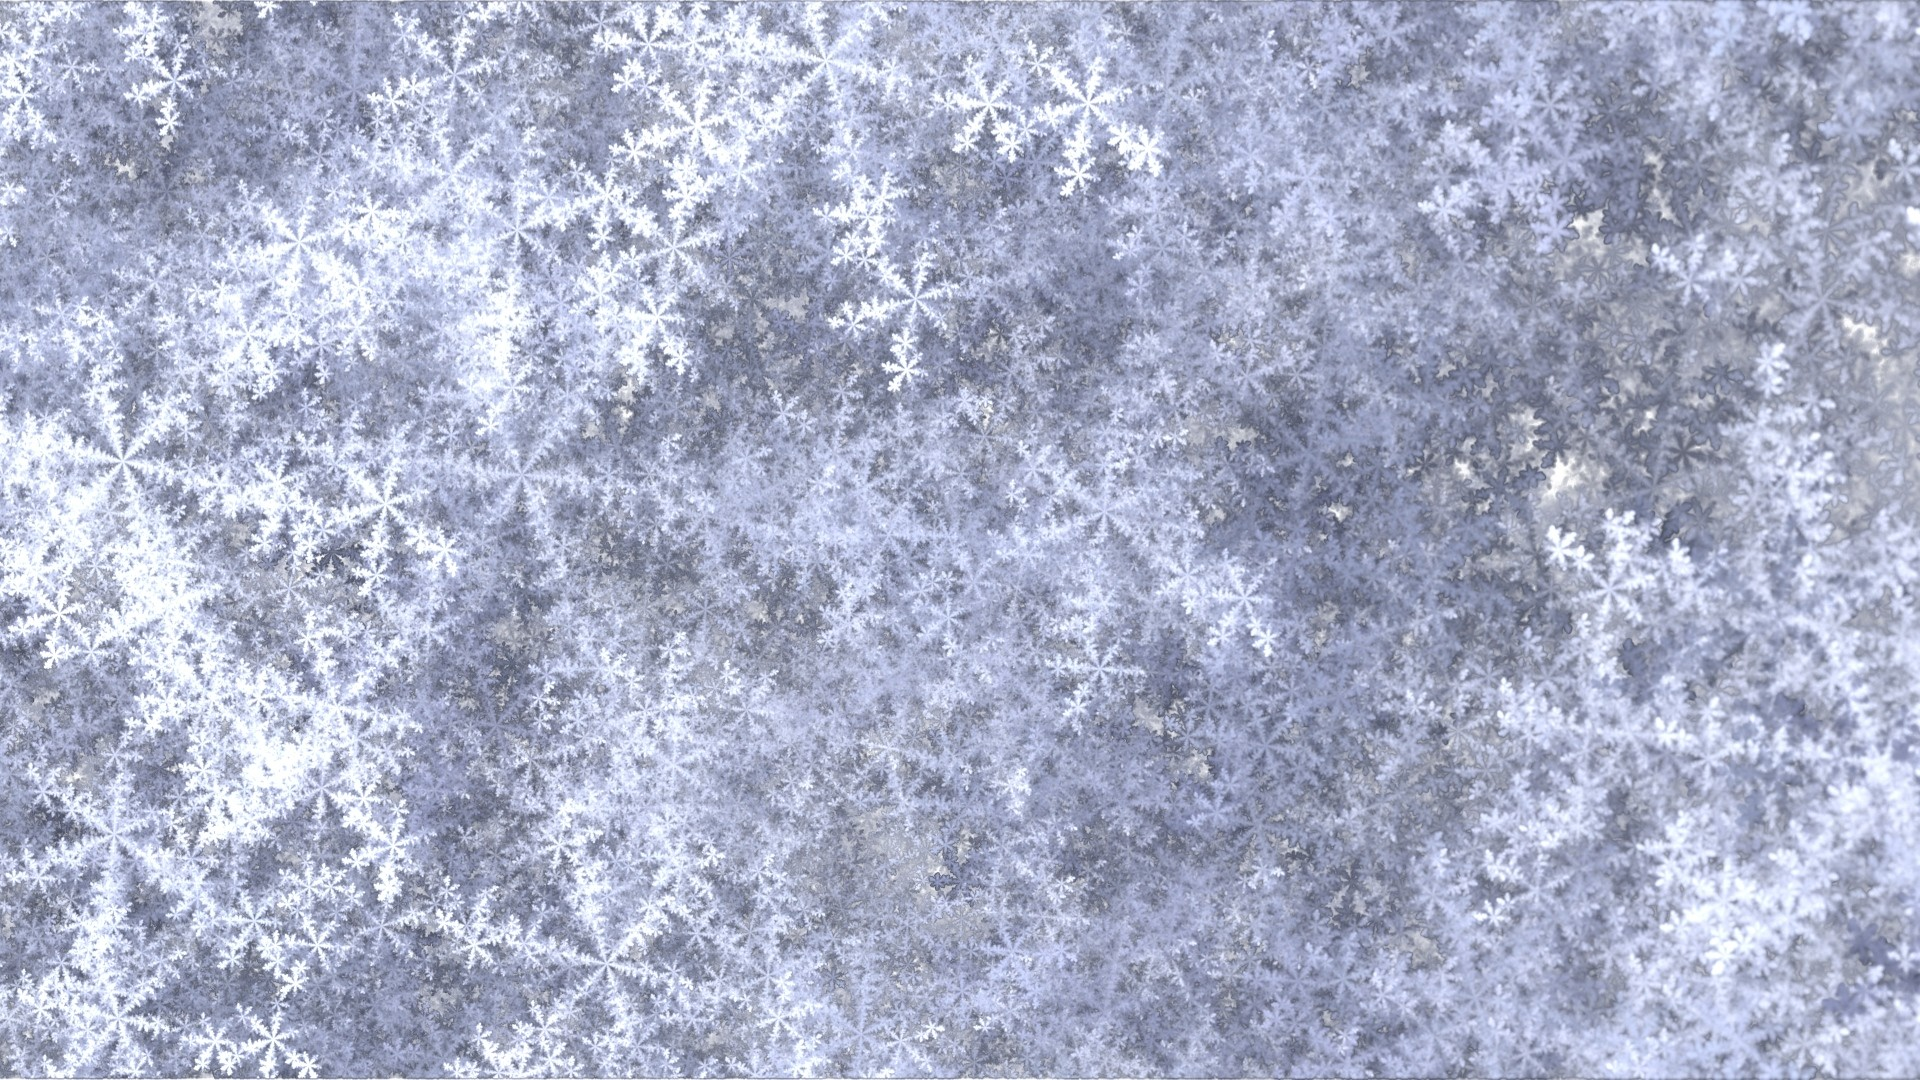 Live Snow Falling Wallpaper For Desktop Snowfall Background 183 ①